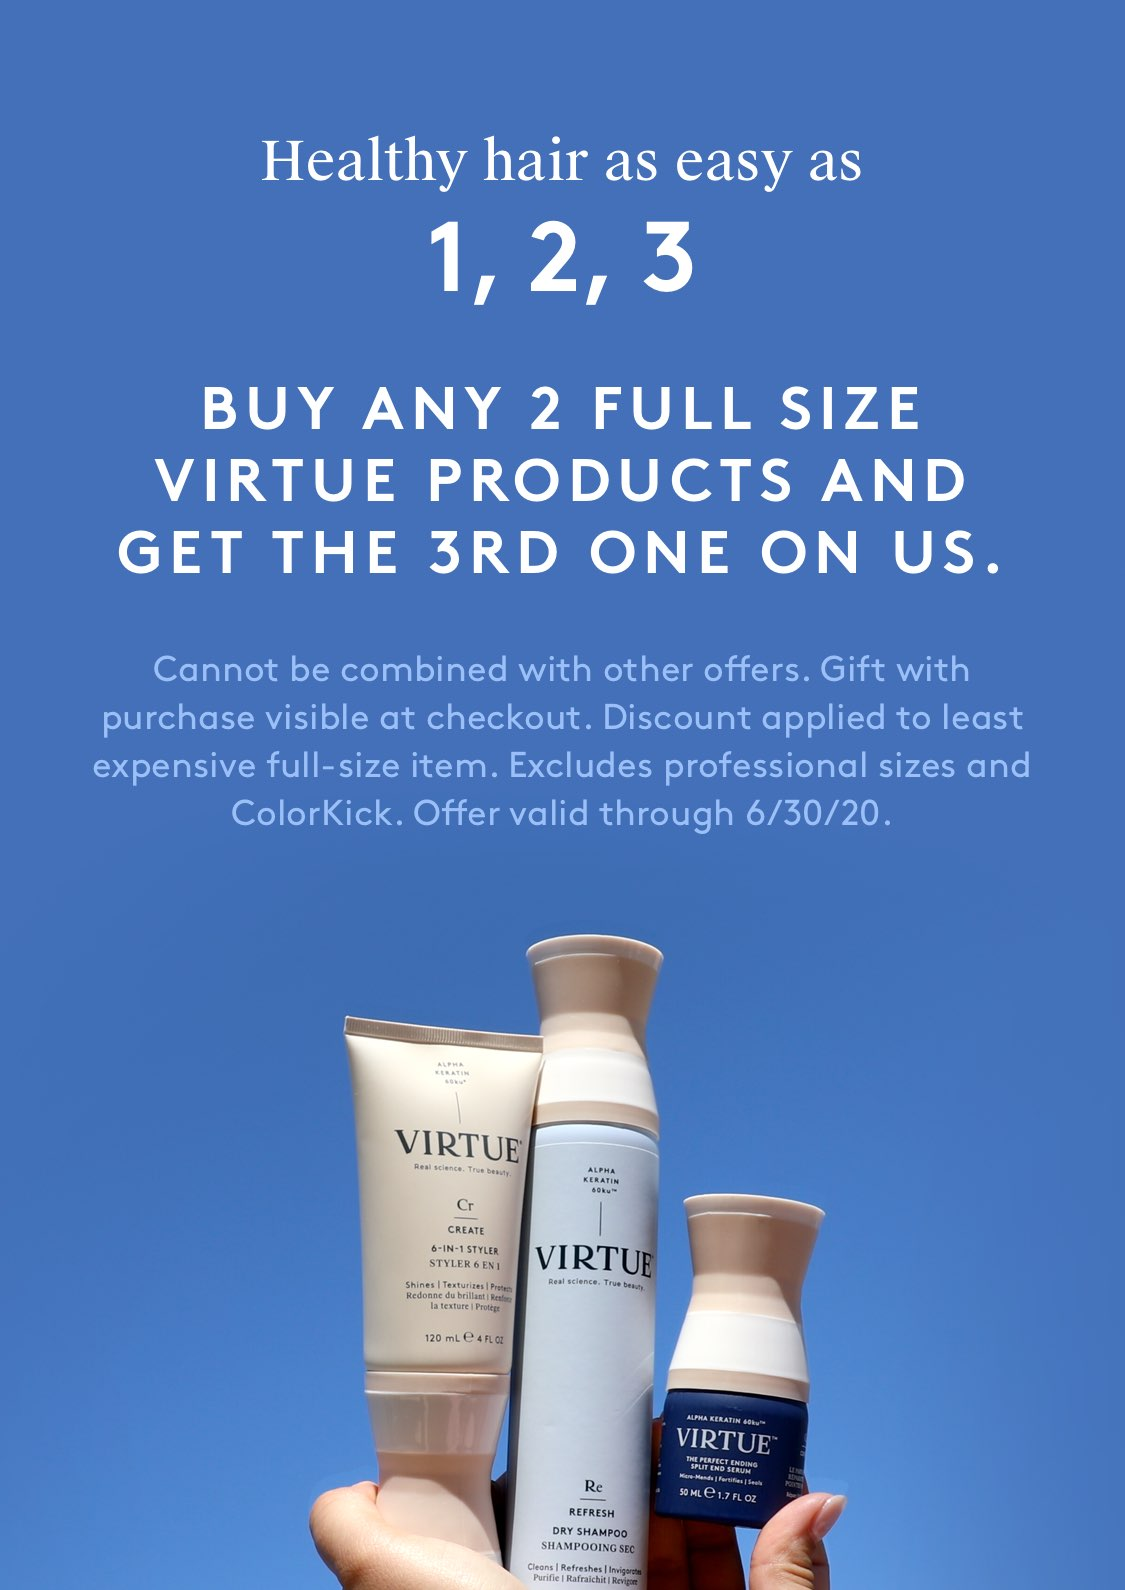 Buy any 2 full size Virtue products and get the 3rd one on us